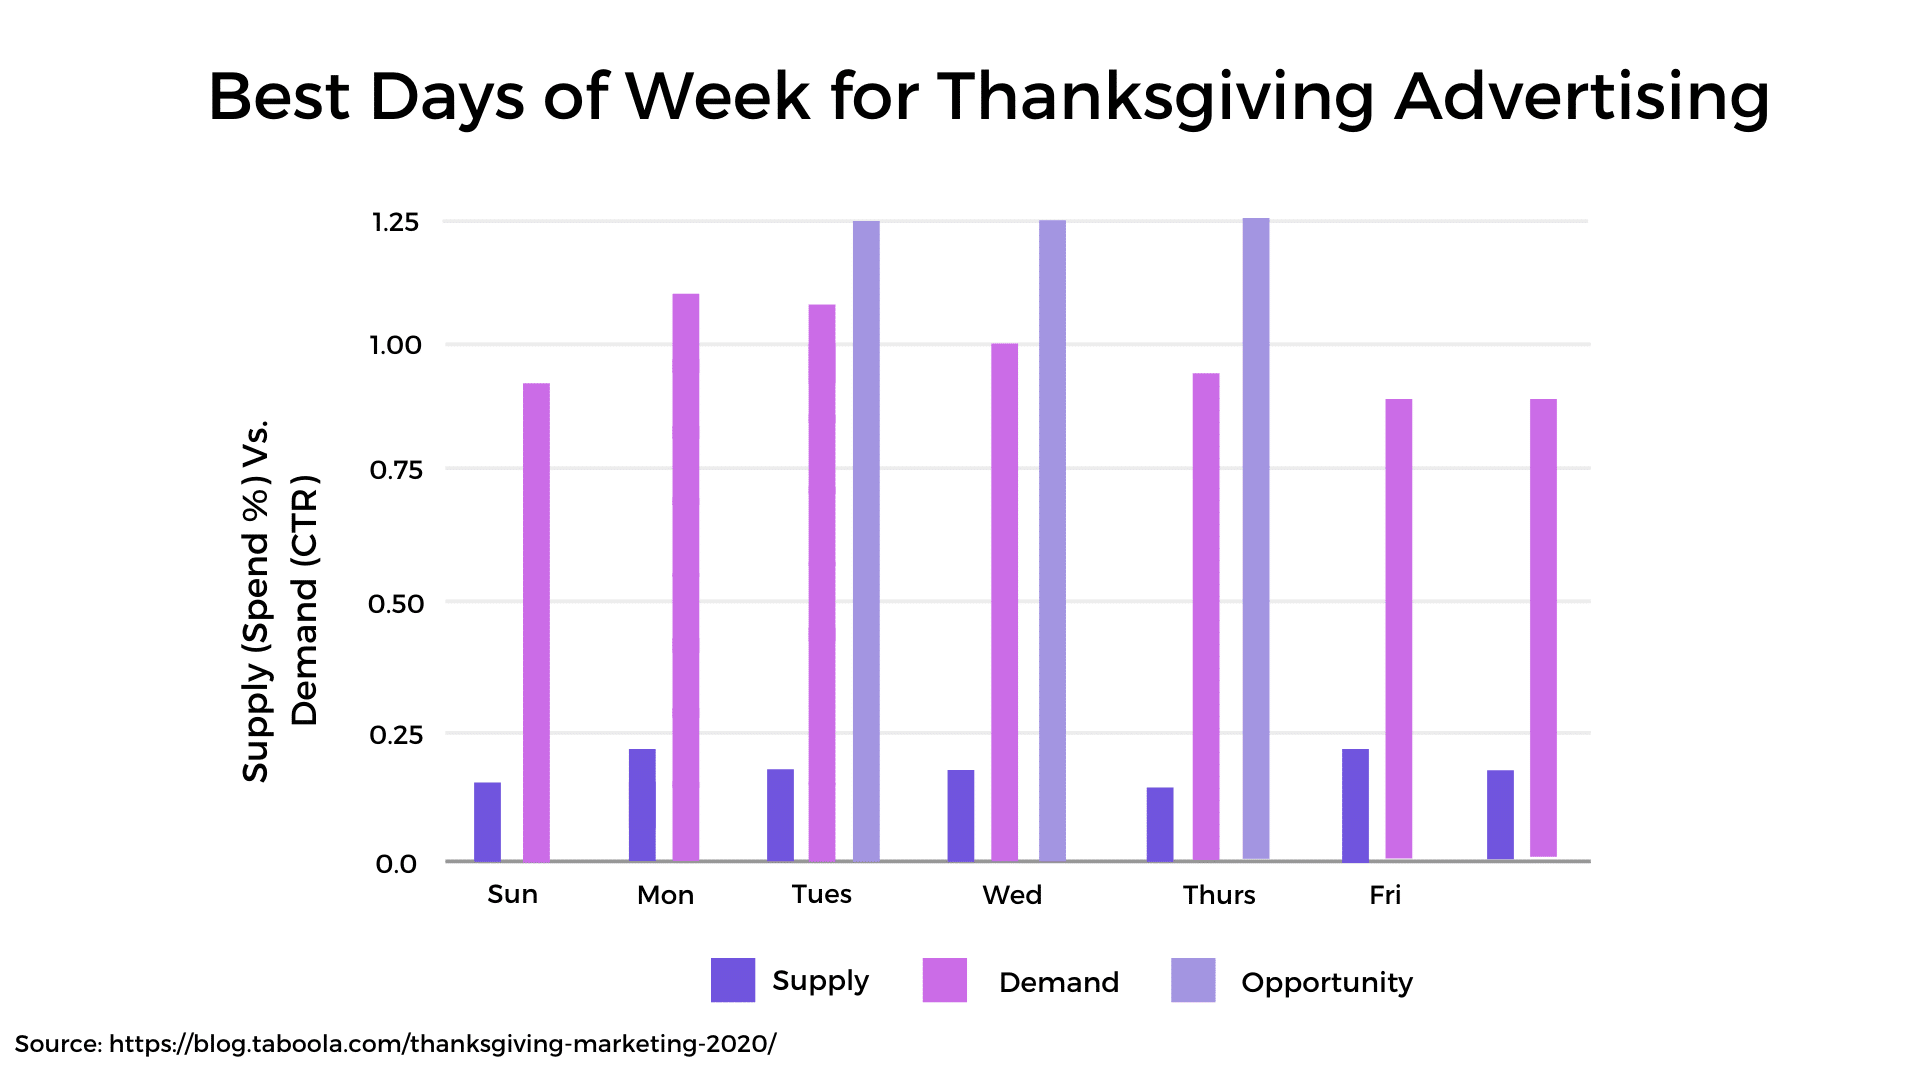 Best Days of Week for Thanksgiving Advertising